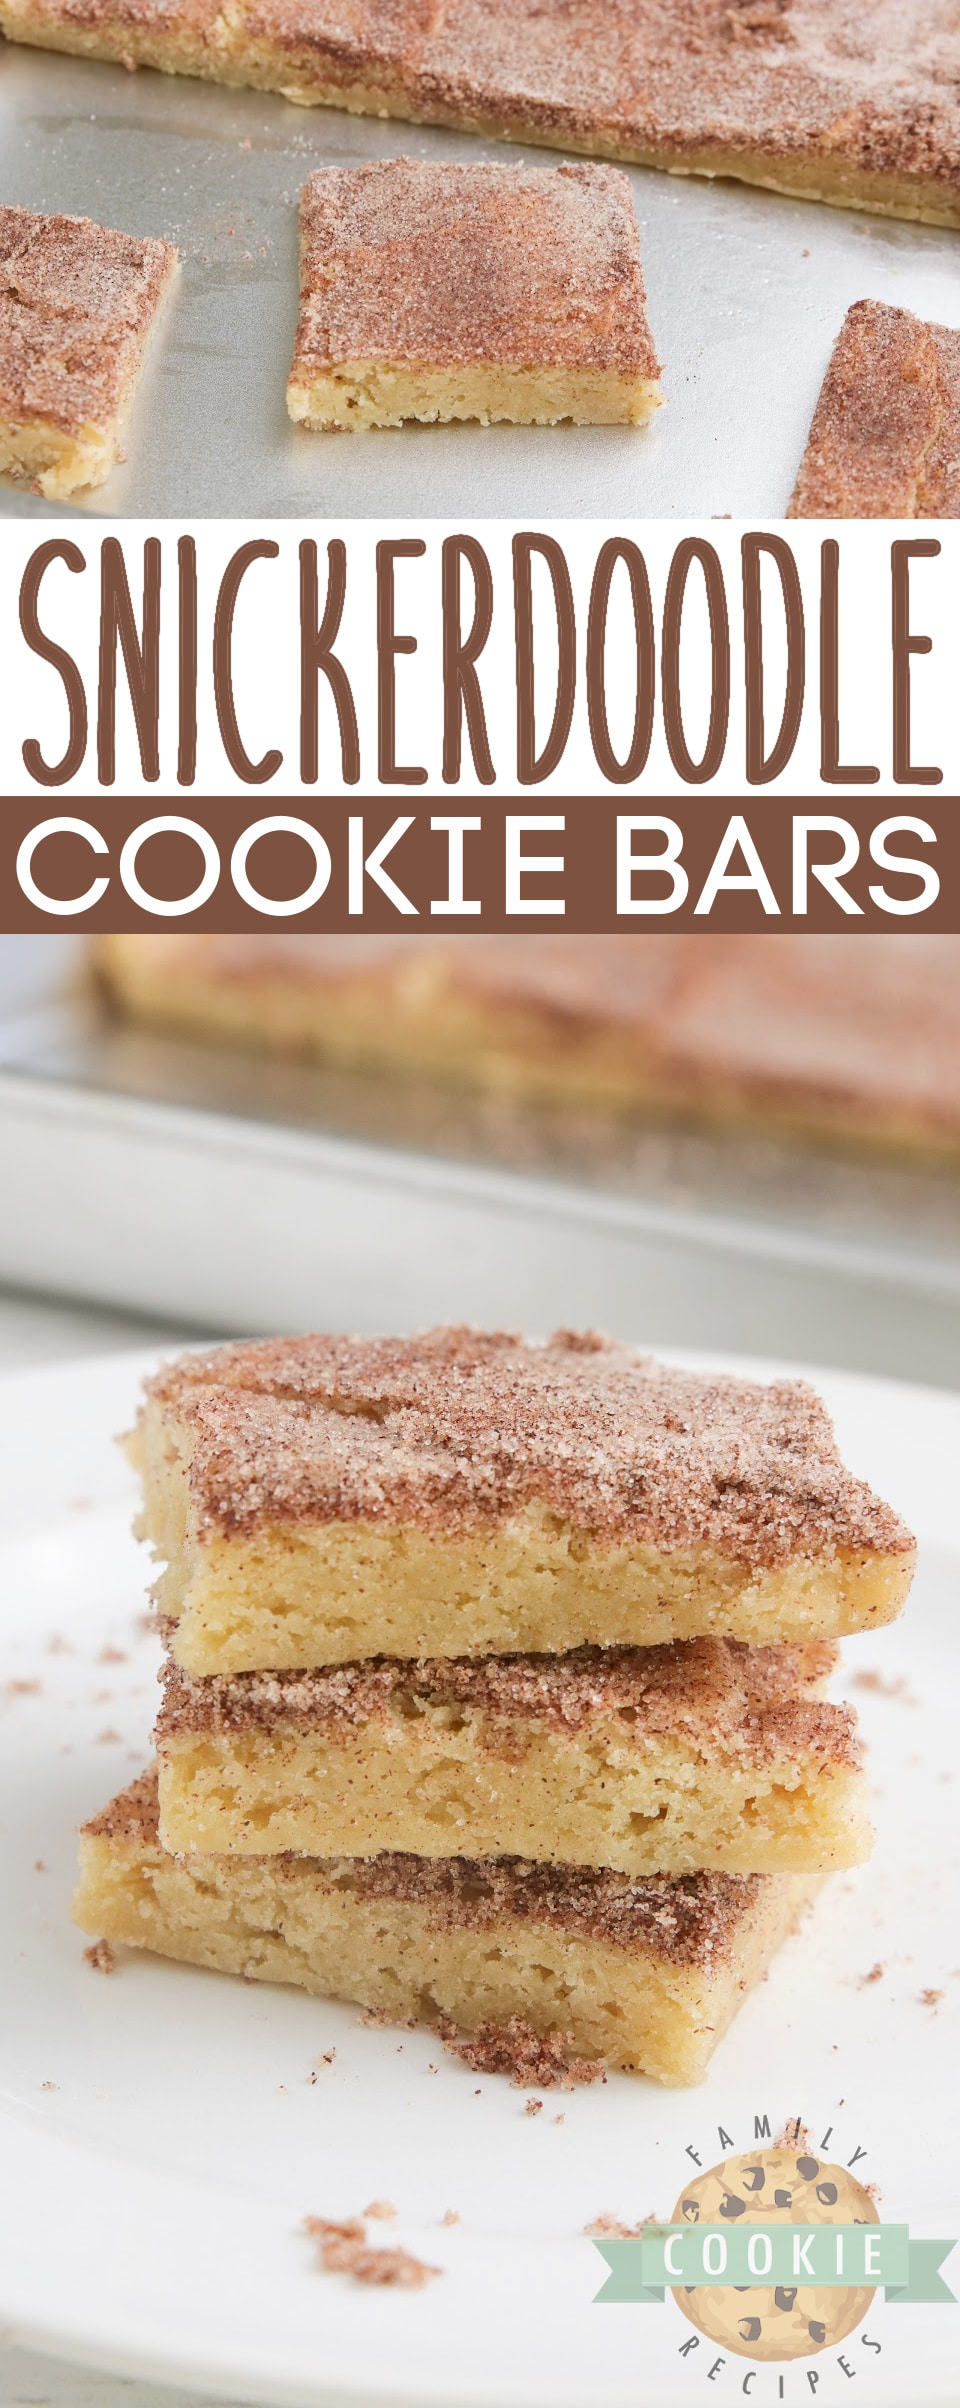 Snickerdoodle Cookie Bars are soft, delicious and packed with that cinnamon flavor we all love! Simple snickerdoodle recipe that is made in a sheet pan and can be easily sliced and served. via @buttergirls